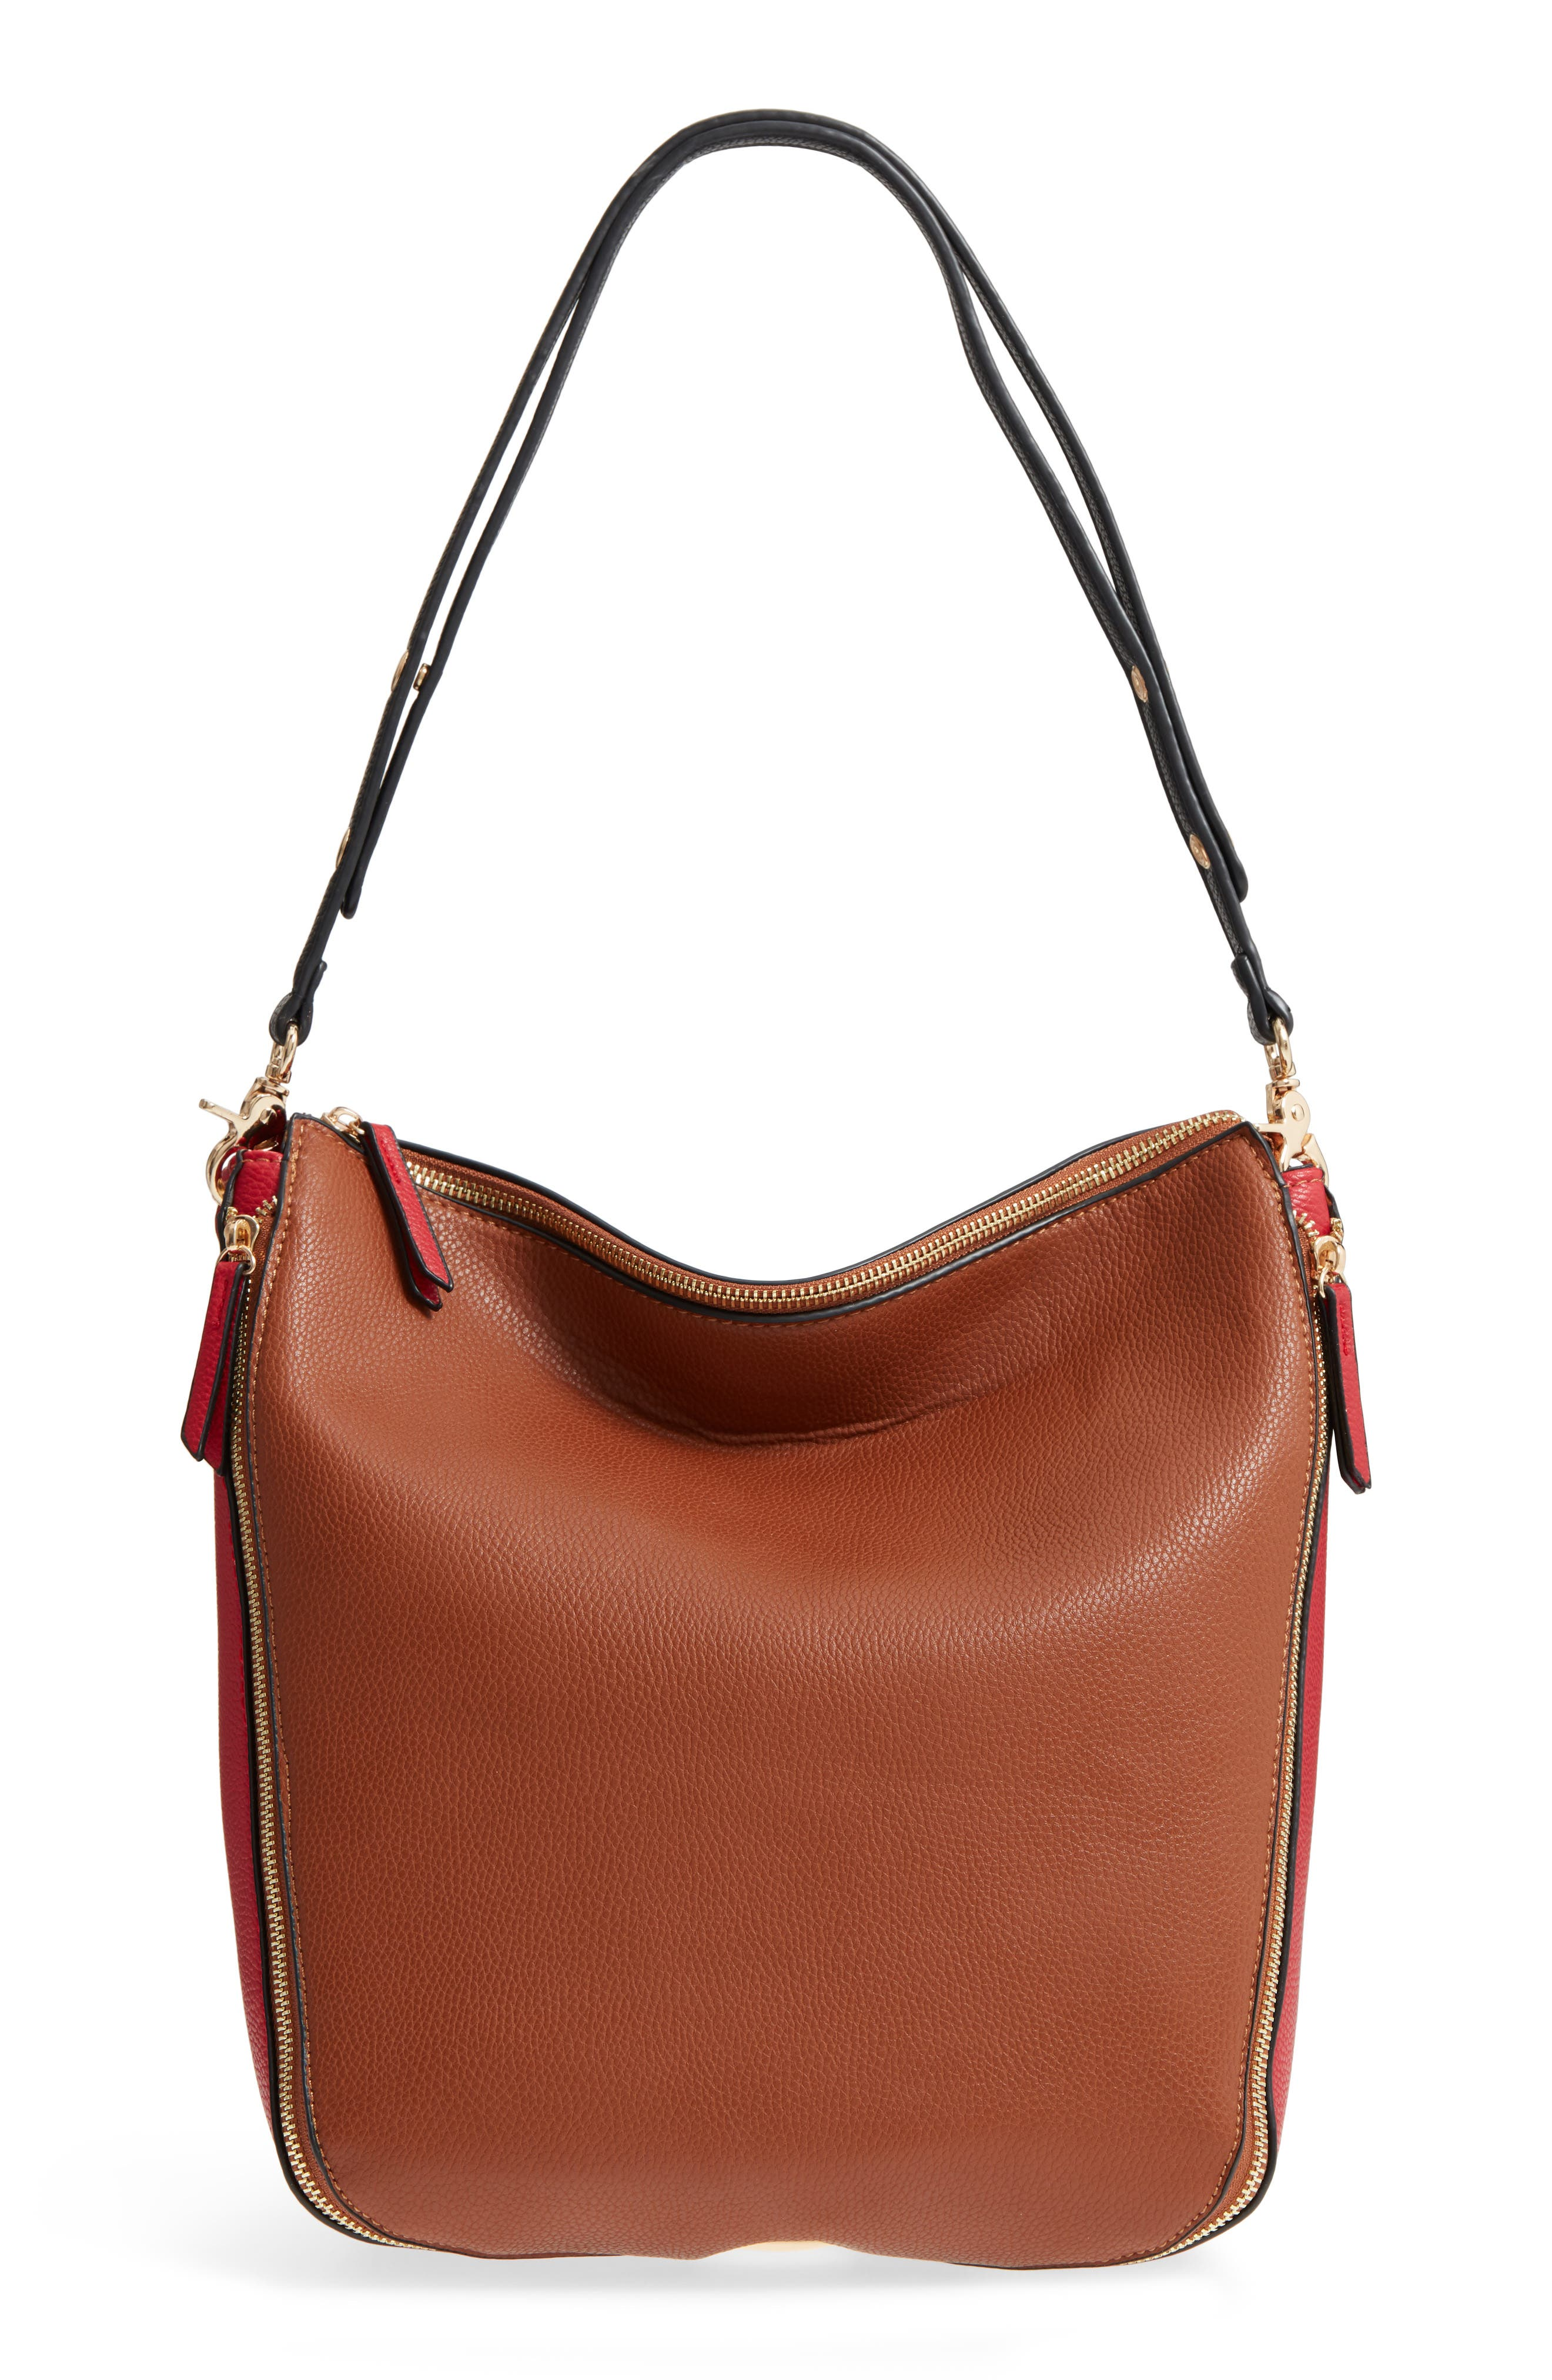 Sondra Roberts Colorblock Faux Leather Hobo